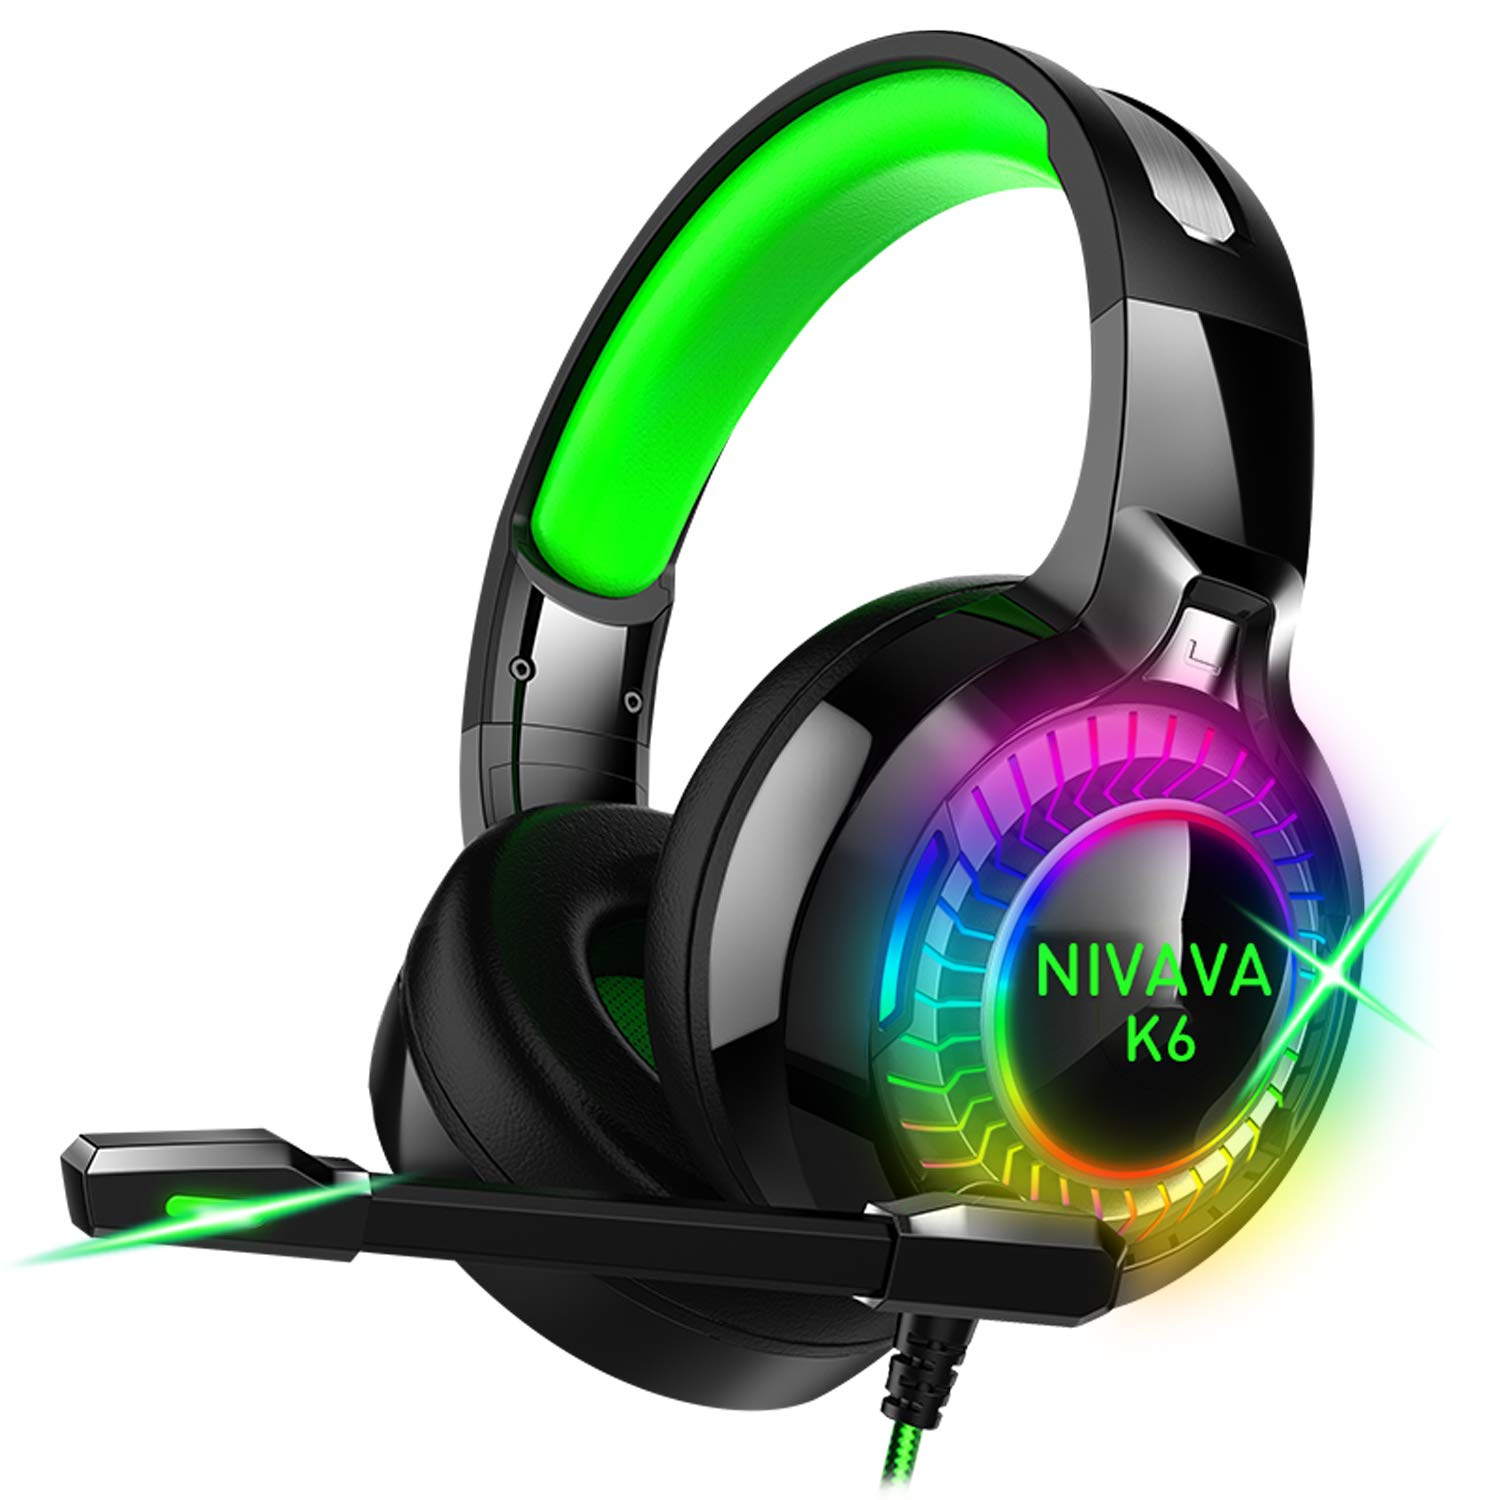 Nivava Gaming Headset for PS4, Xbox One, PC Headphones with Microphone LED Light Mic for Nintendo Switch Playstation Computer, K6 Green